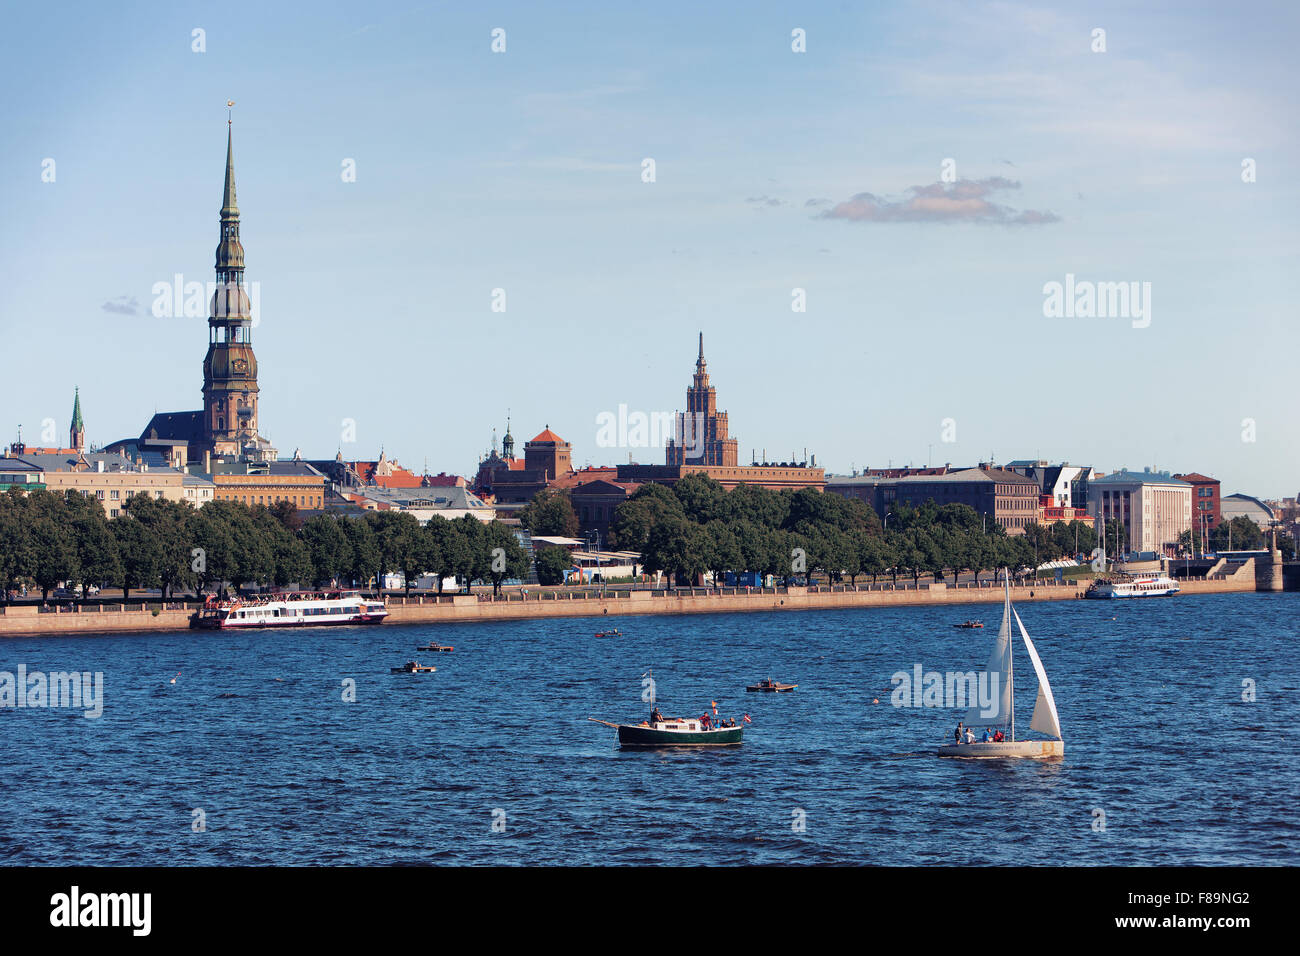 View of the city of Riga on the Daugava river with yachts and ships at the background of the spiers of churches - Stock Image